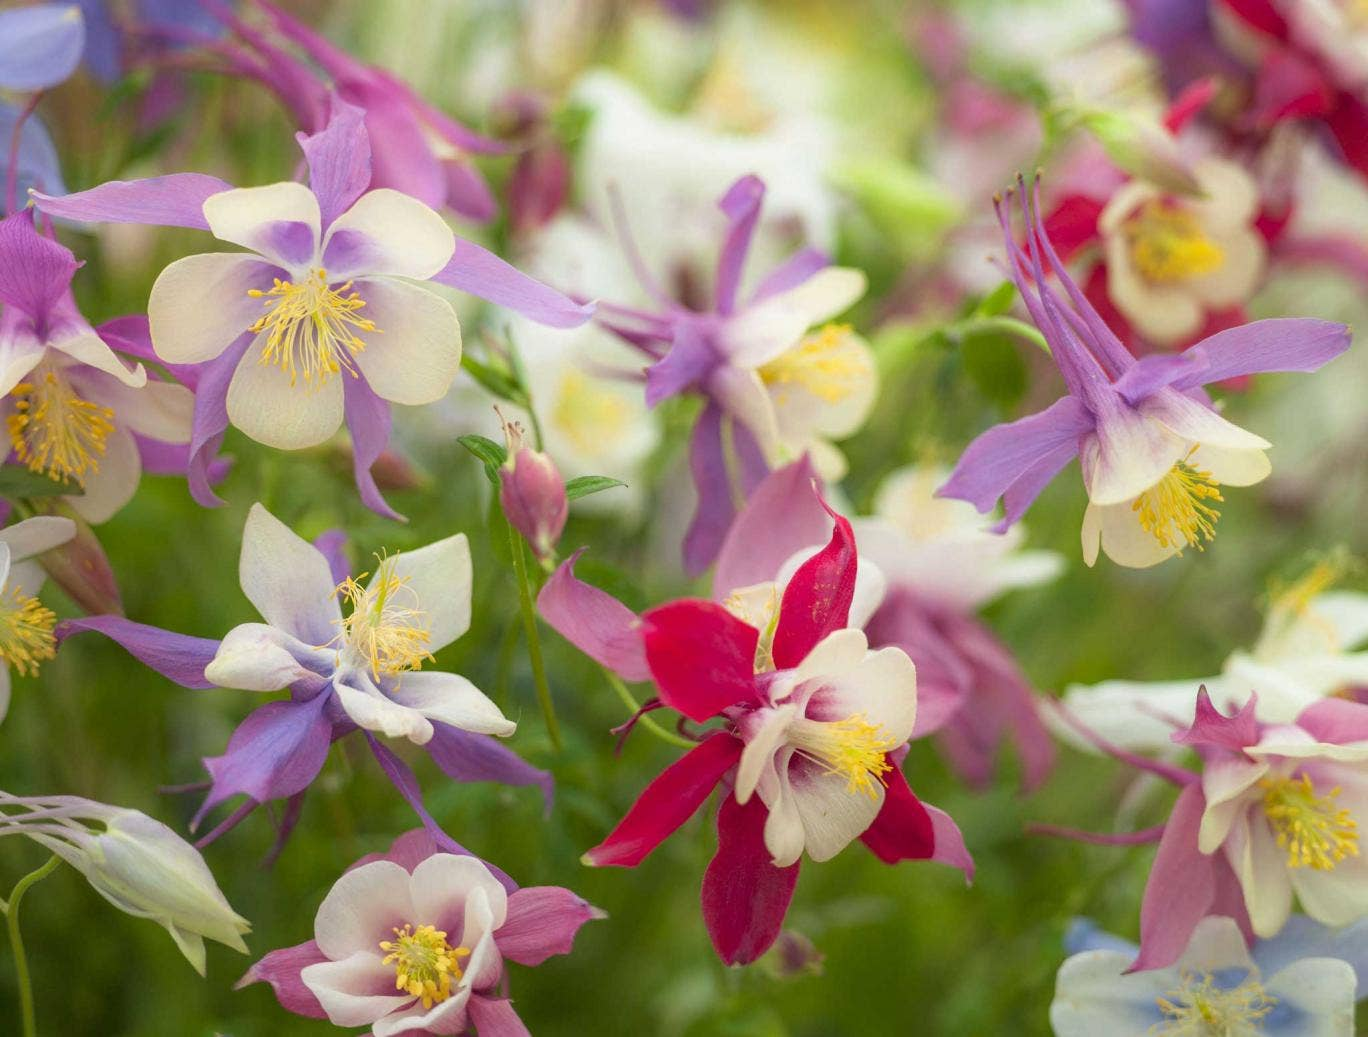 Aquilegias germinate best if sown now in pots or boxes of damp compost standing in the shade